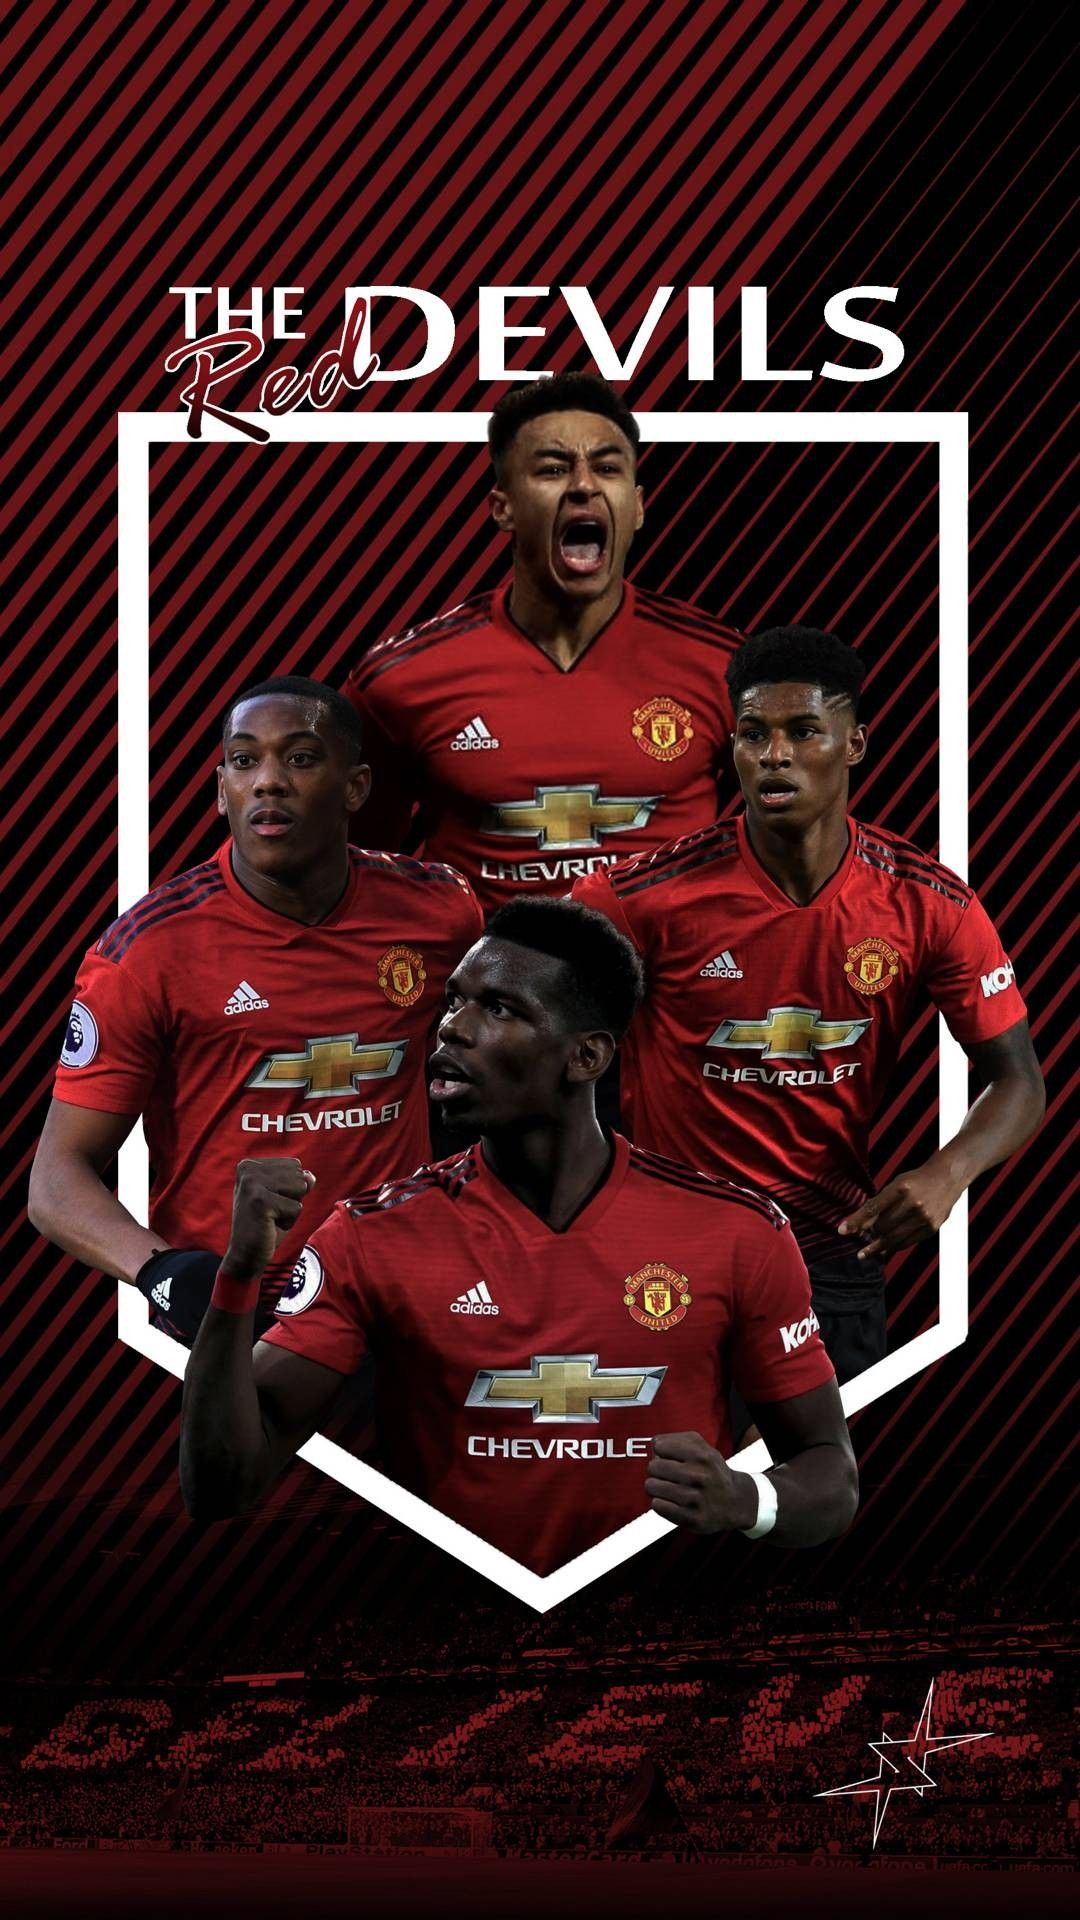 the red devils man utd wallpaper manchester united logo manchester united poster manchester united team the red devils man utd wallpaper